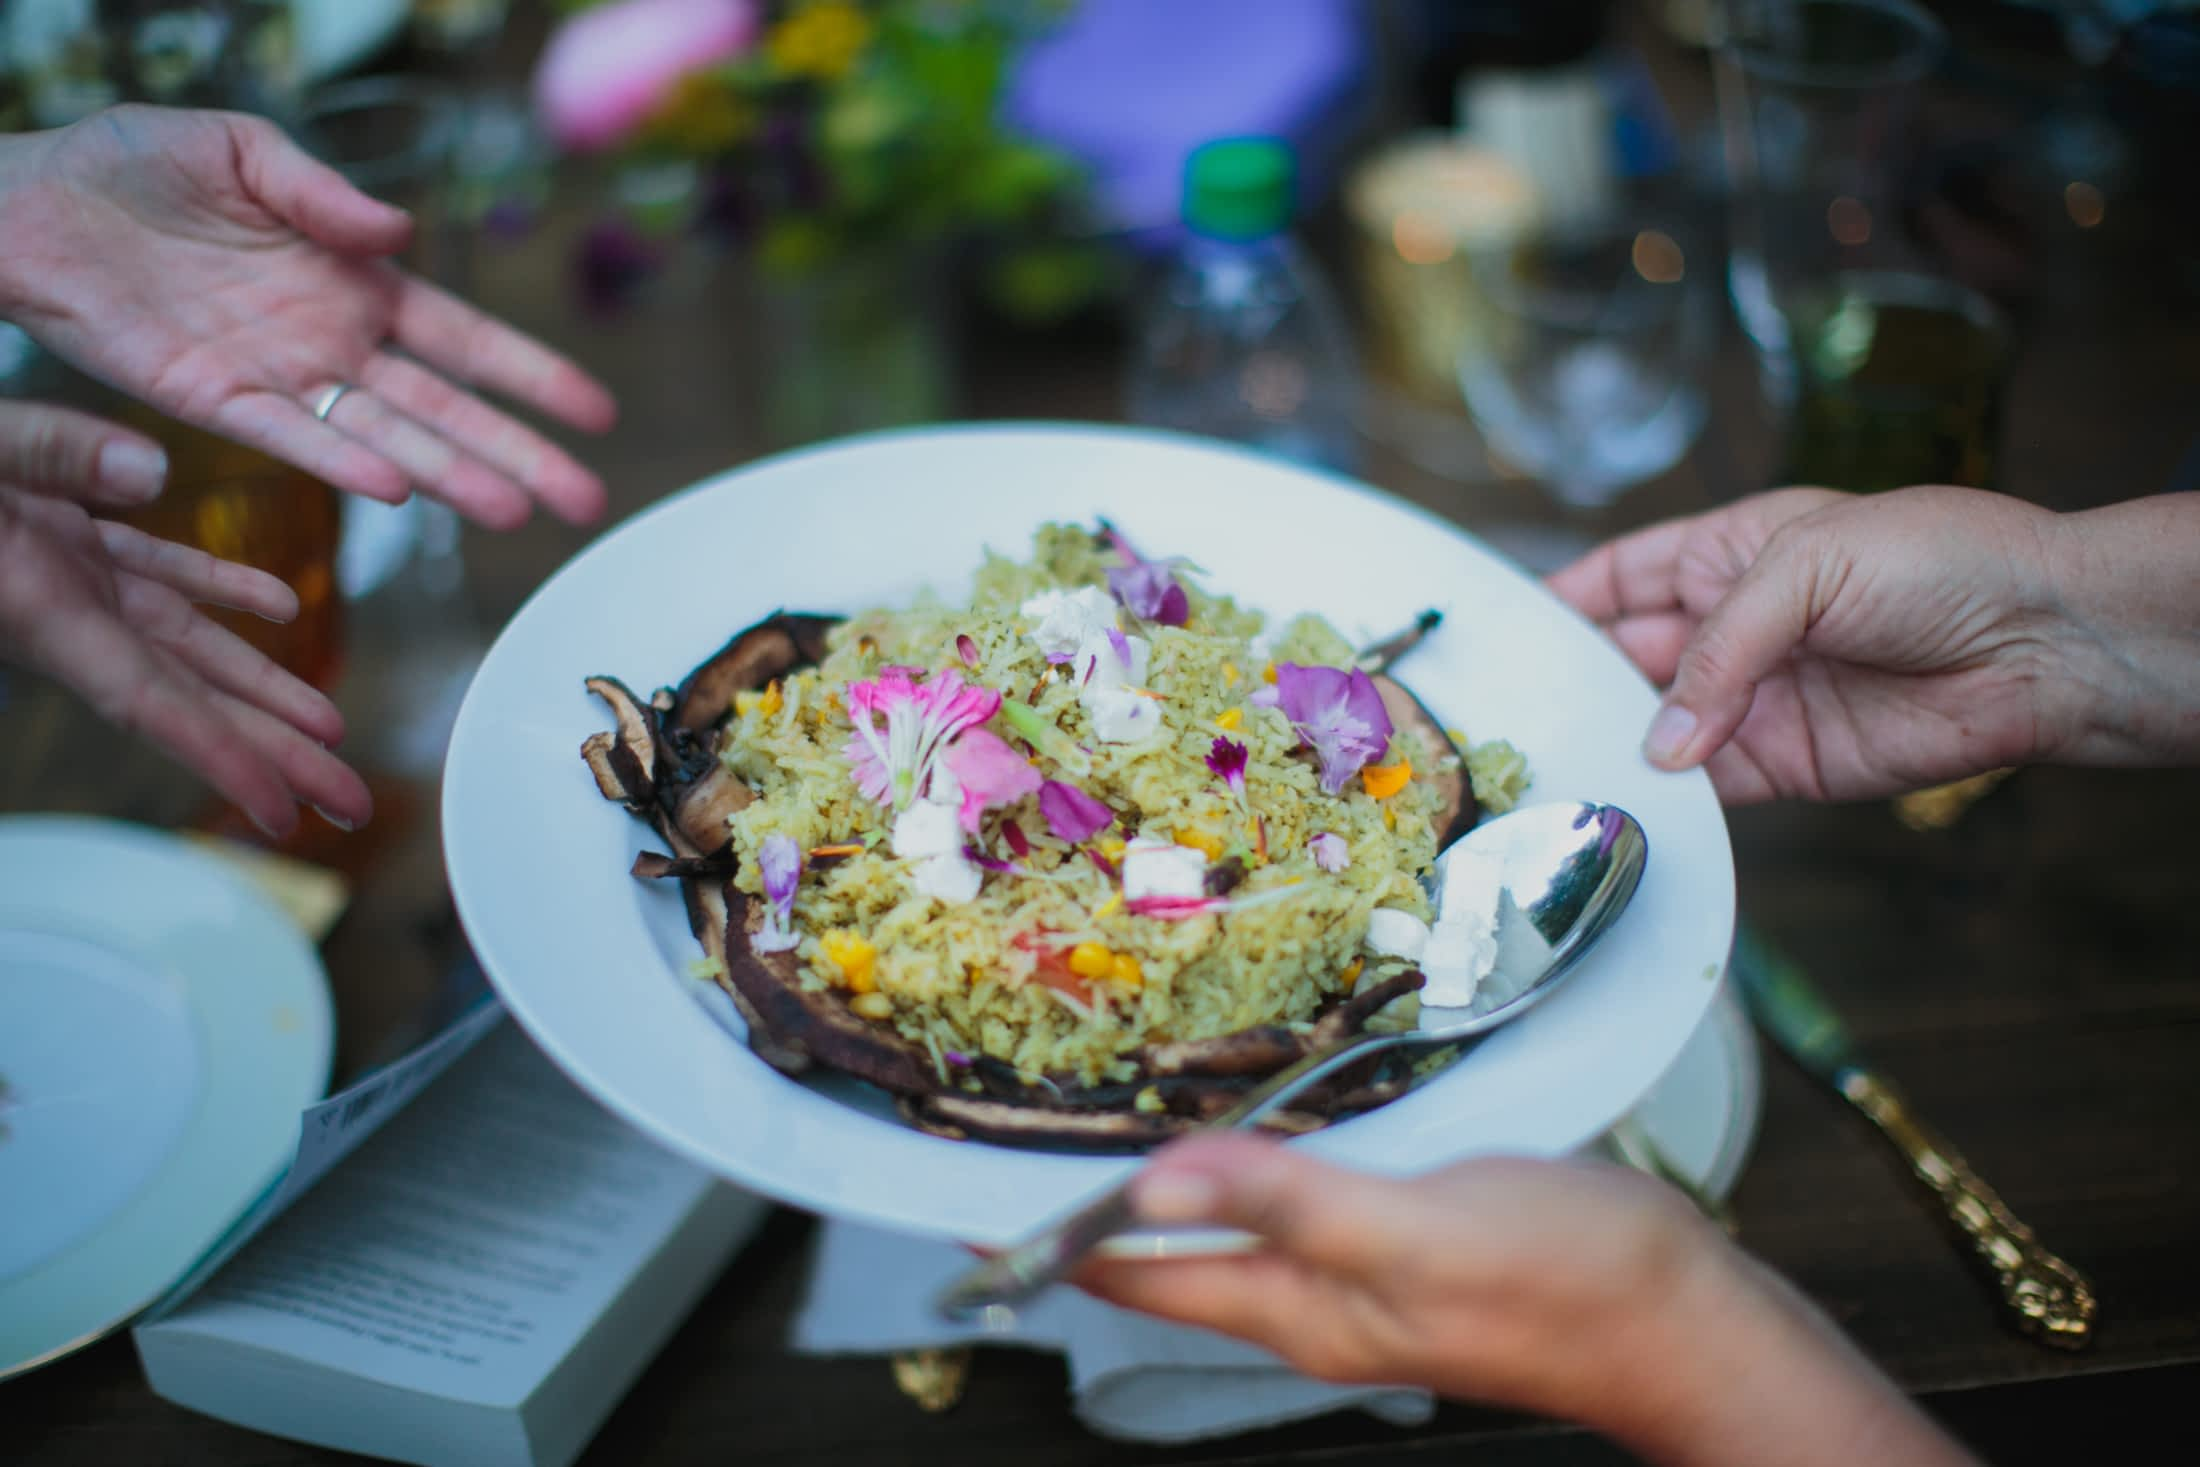 A plate of risotto and flower garnishes is being passed around at the family-style dinner.